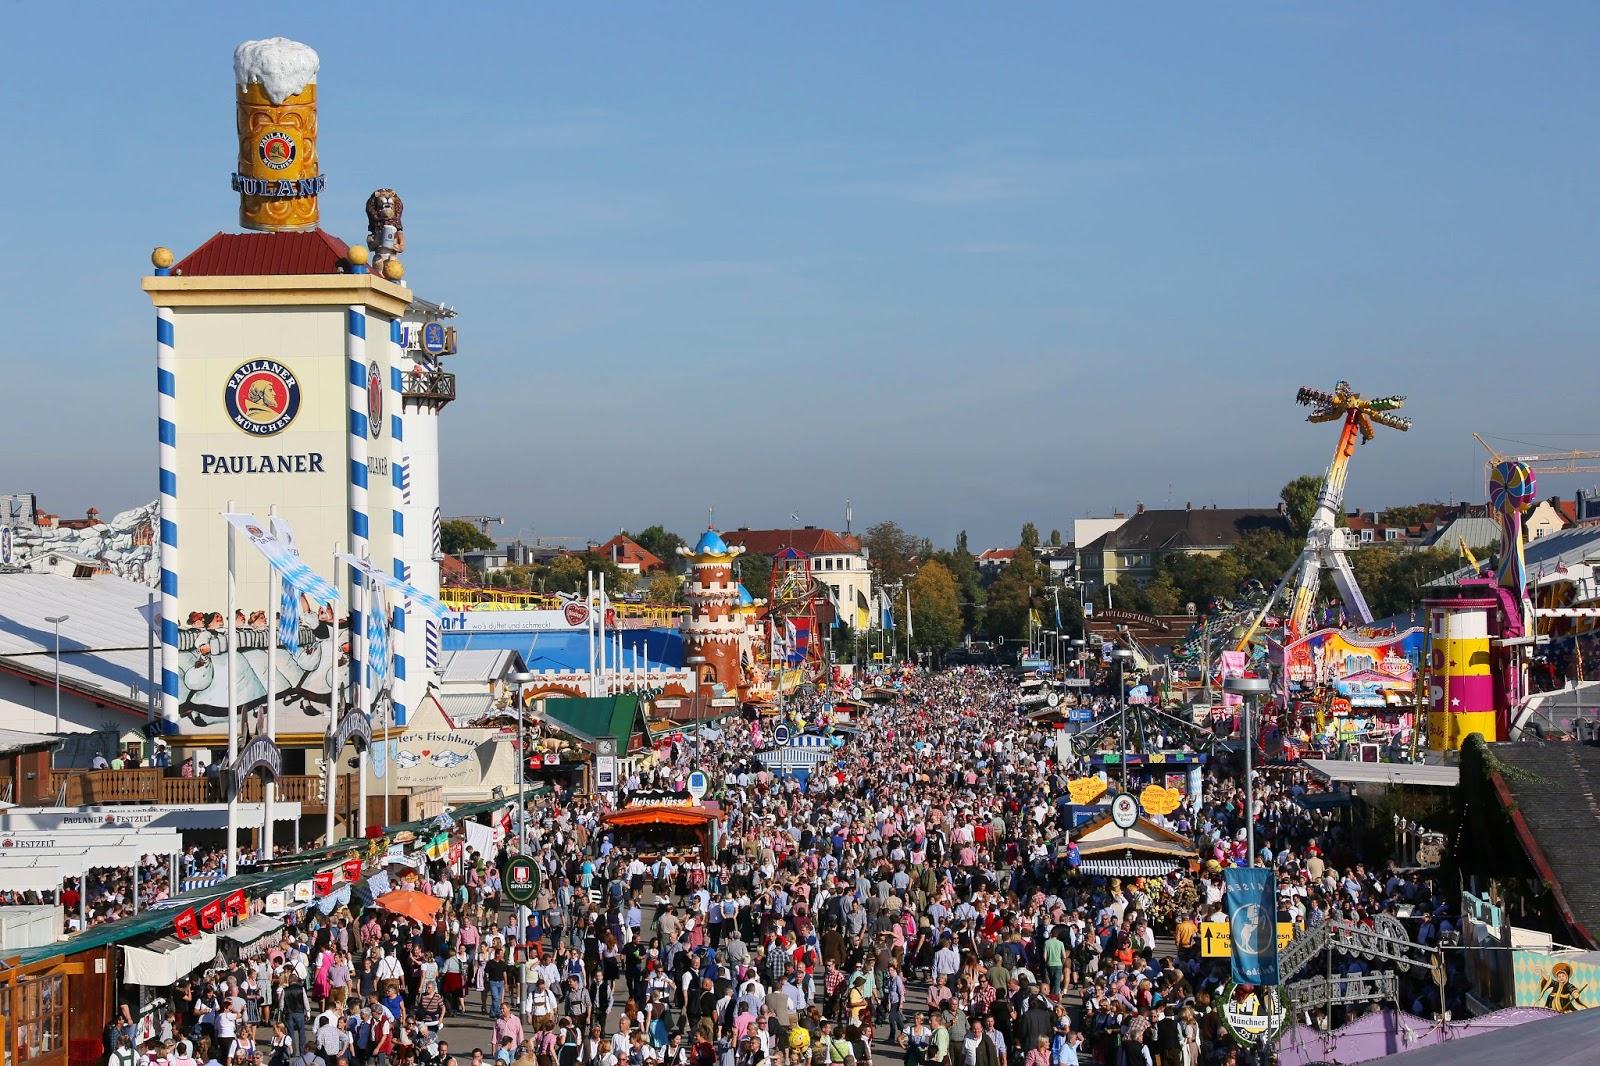 Top Beer Tents At Oktoberfest Hop On And Hop Off - 10 best tents to visit at oktoberfest in munich